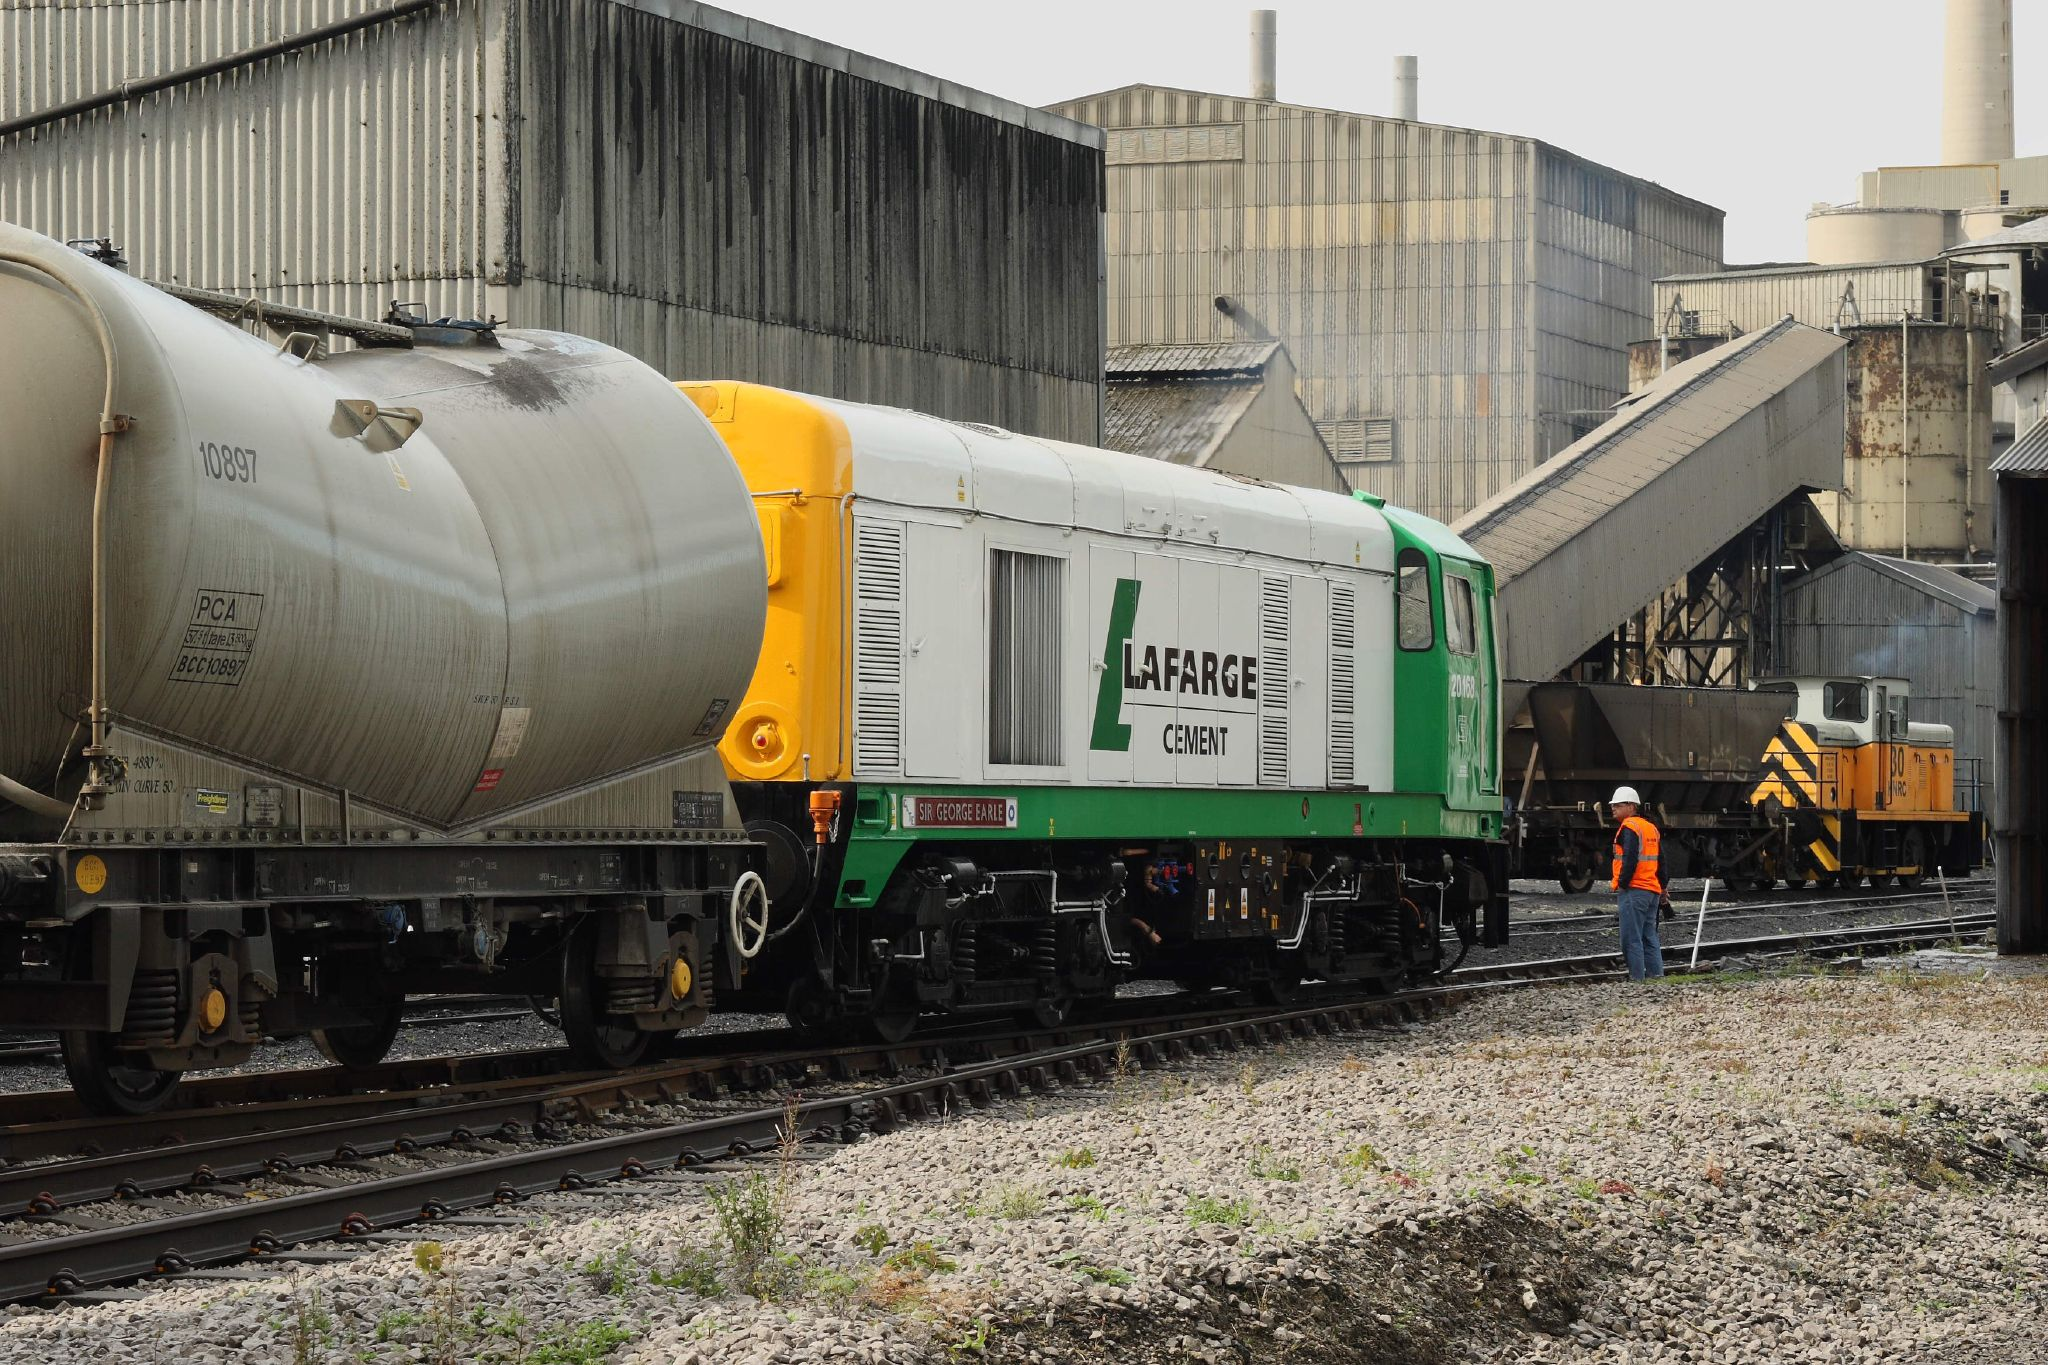 lafarge%20cement%20wikipedia%20commons_0.jpg